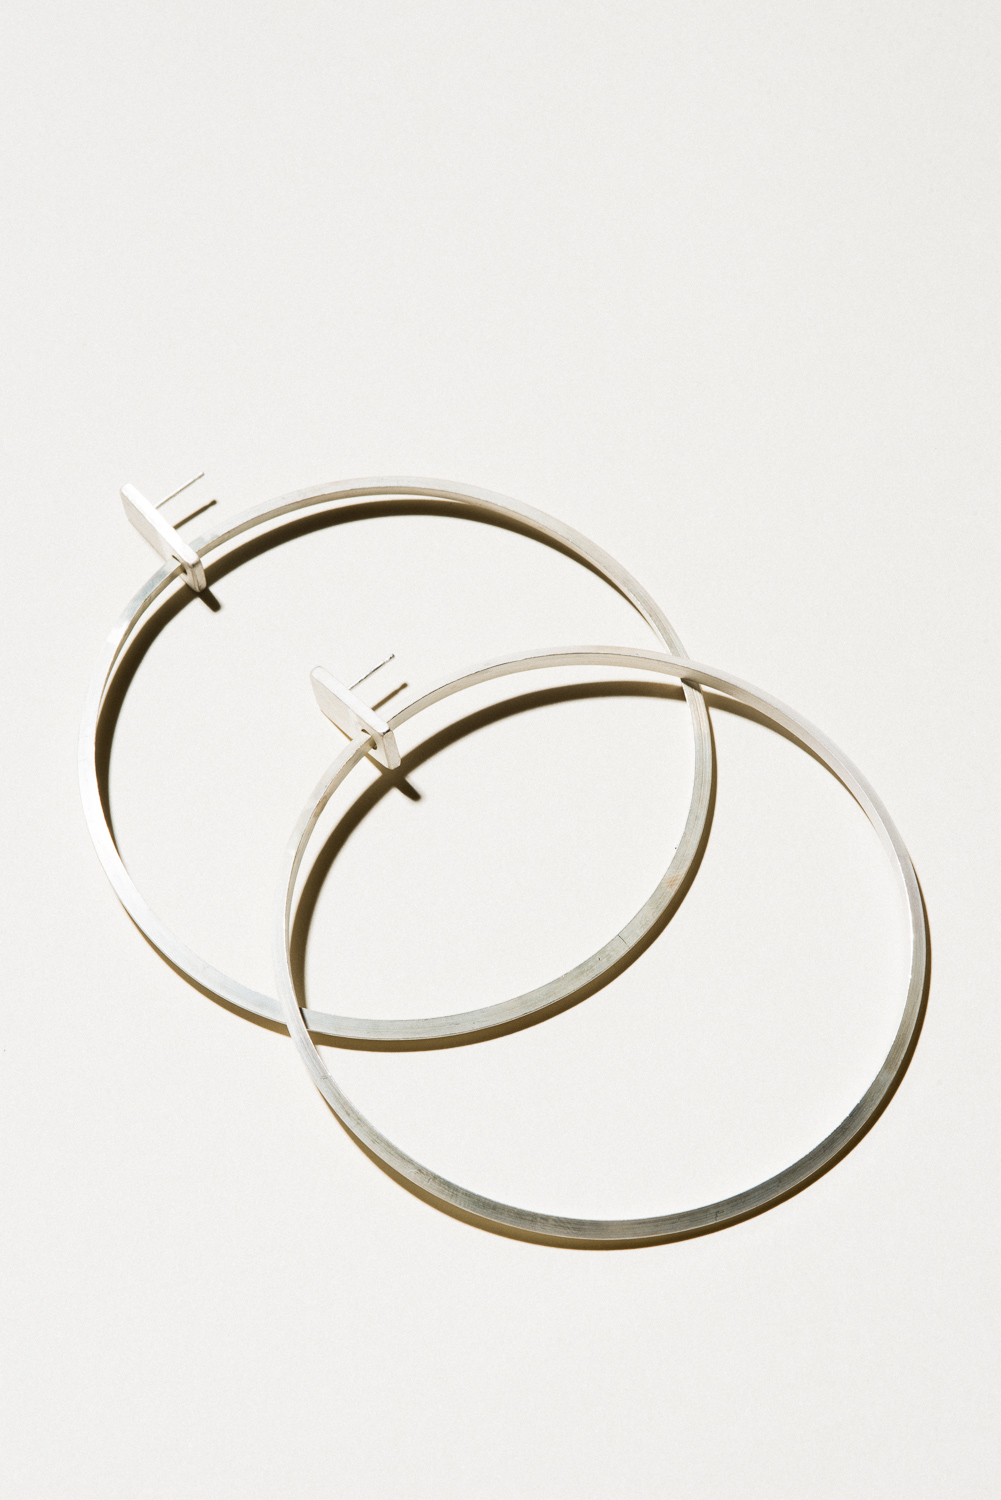 "XL Prism Hoops - 3.5"" diameterSterling Silver, Raw FinishHand Smithed$225"